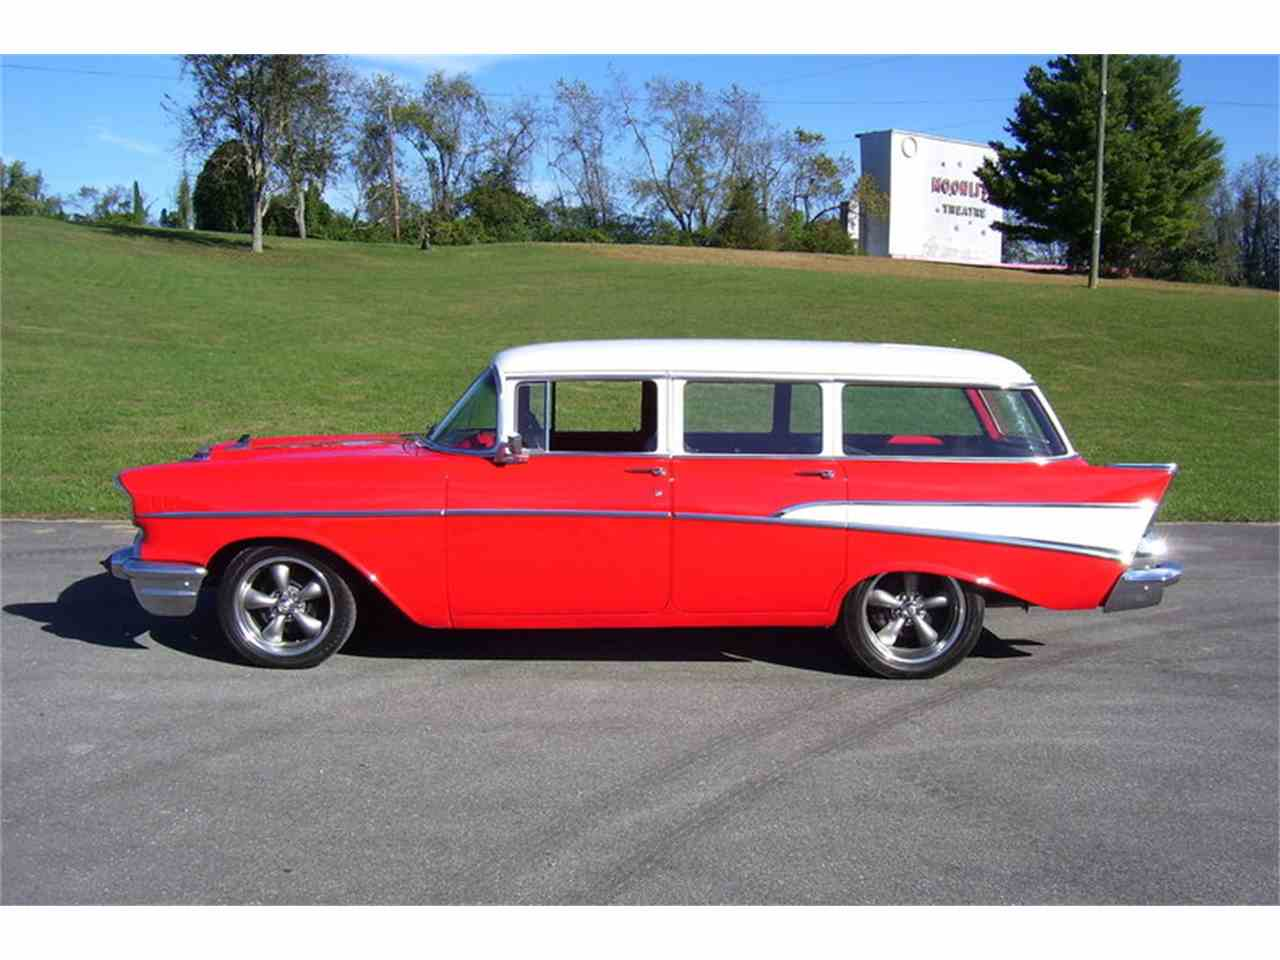 All Chevy 1957 chevy wagon for sale : 1957 Chevrolet 210 Beauville Station Wagon for Sale | ClassicCars ...